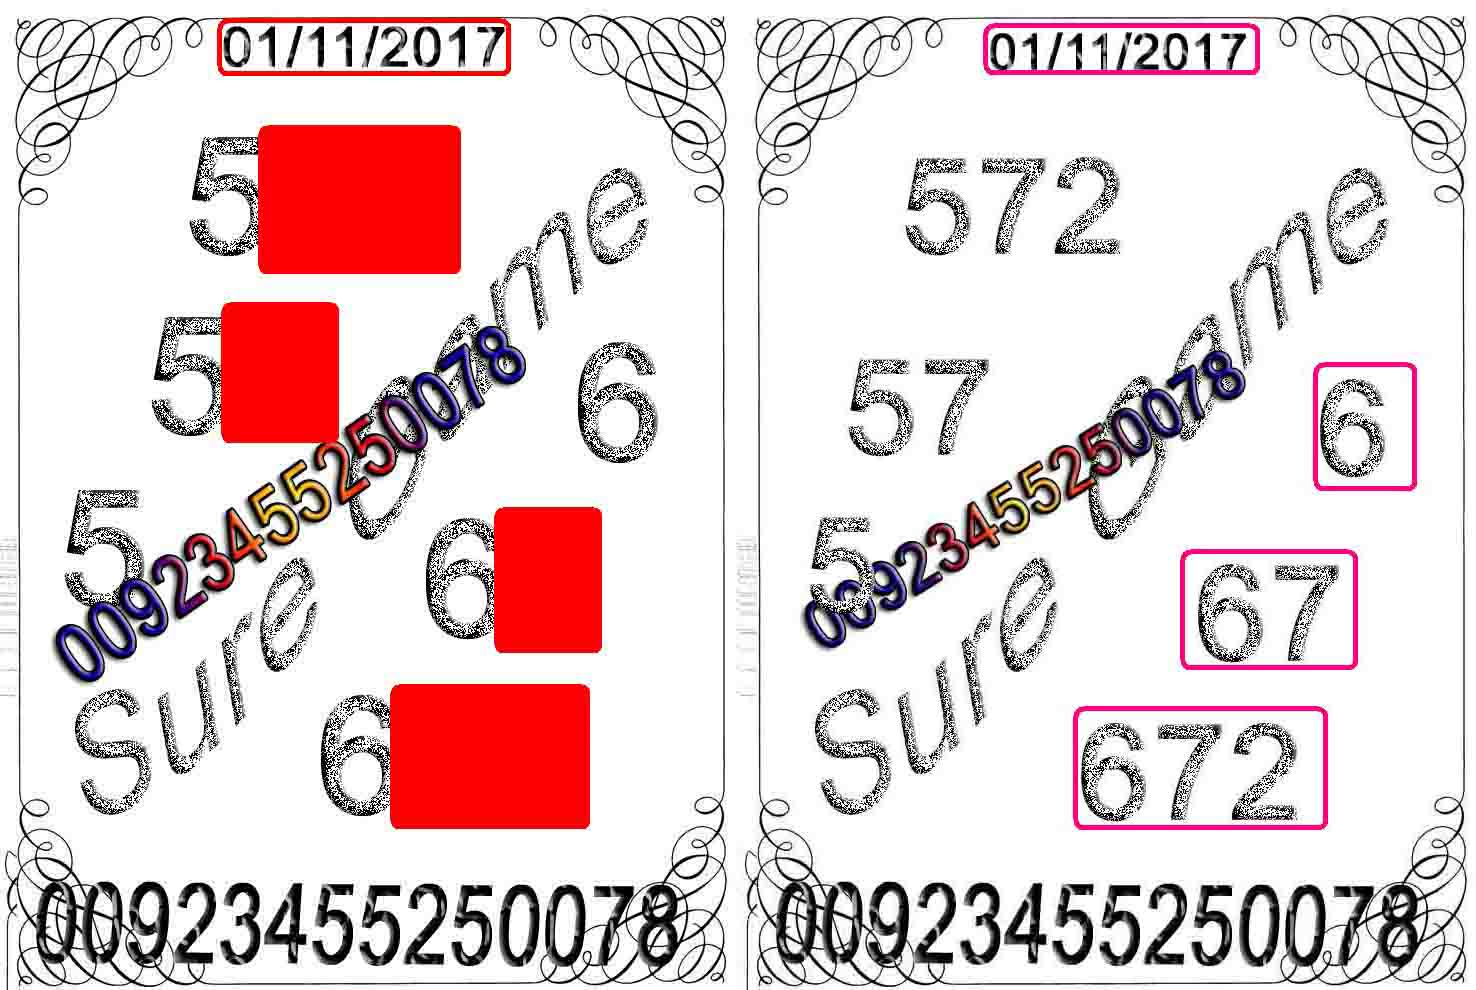 Thai Lotto VIP0010274-2